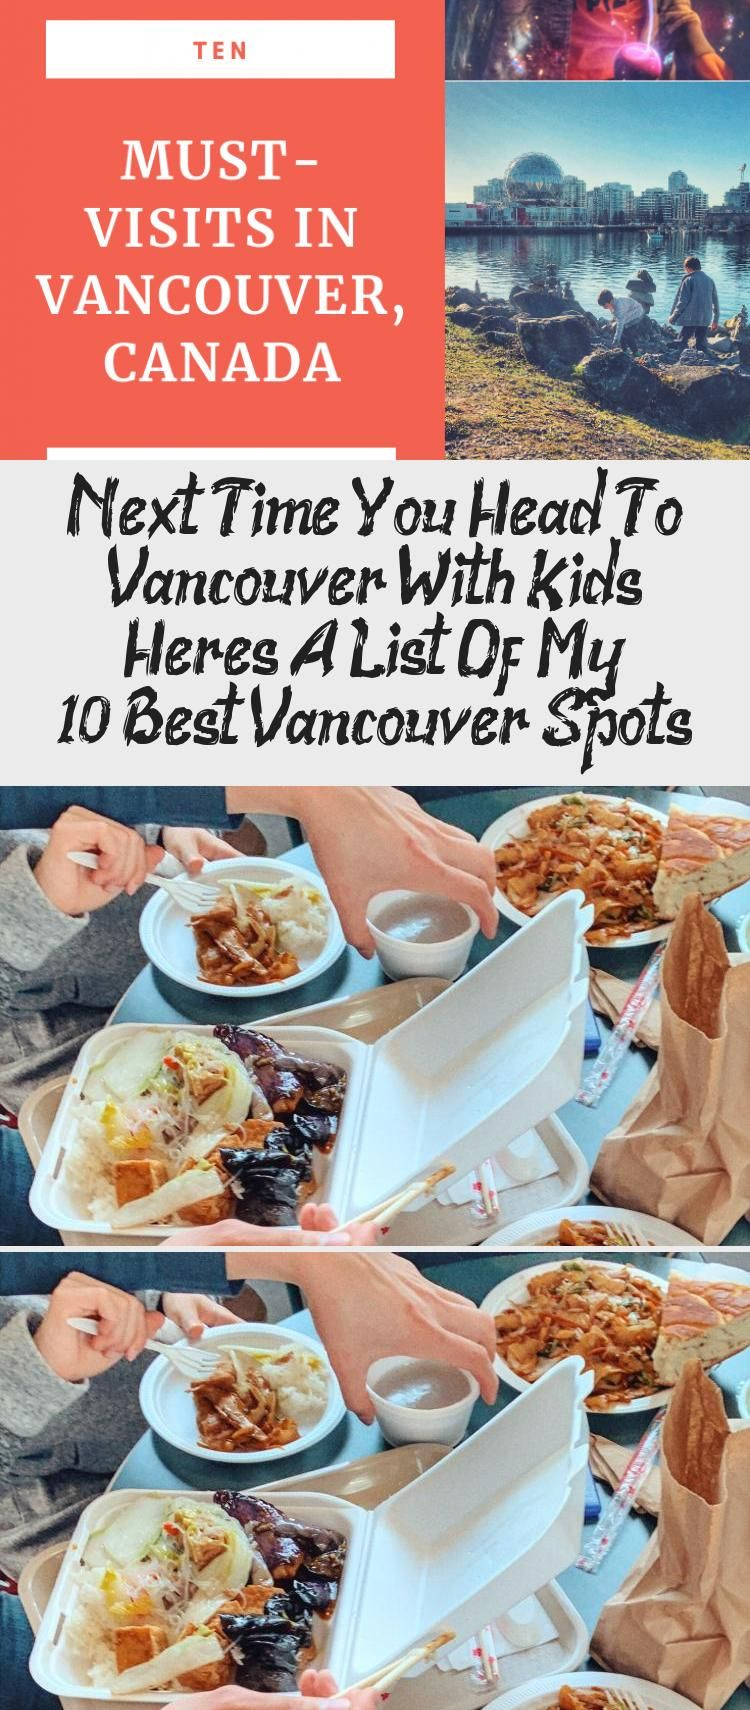 Next Time You Head To Vancouver With Kids Here S A List Of My 10